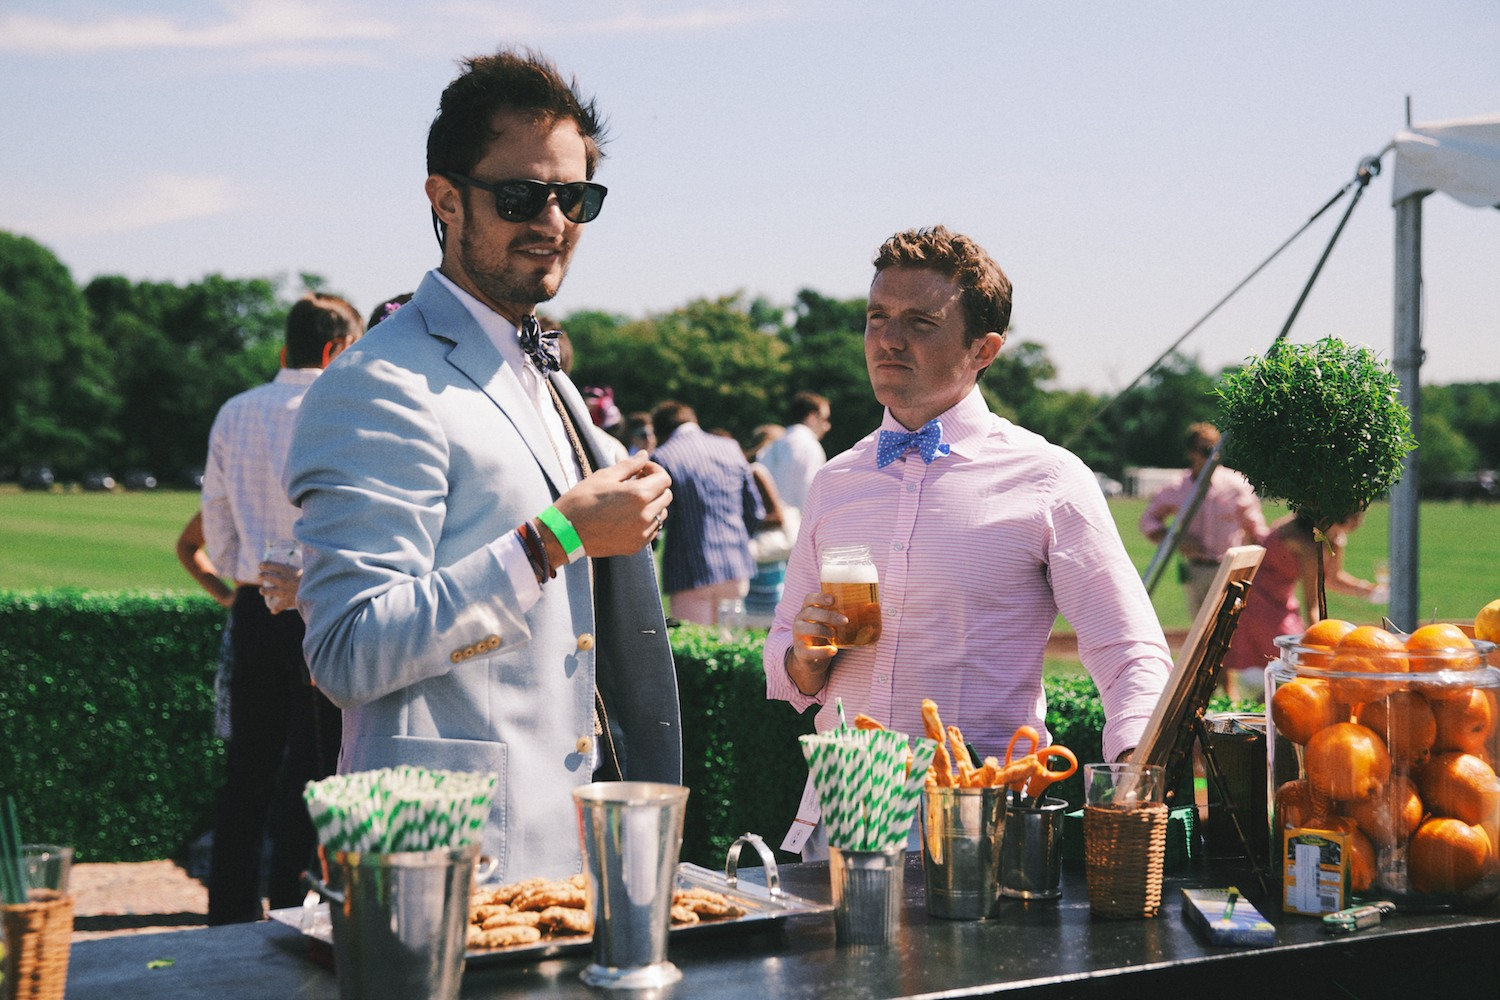 Swirl striped paper straws, wicker beer pitchers, and mason jars with your initials written in wax pencil were only a few of the details that made The Party Carpet Tailgate so fun.